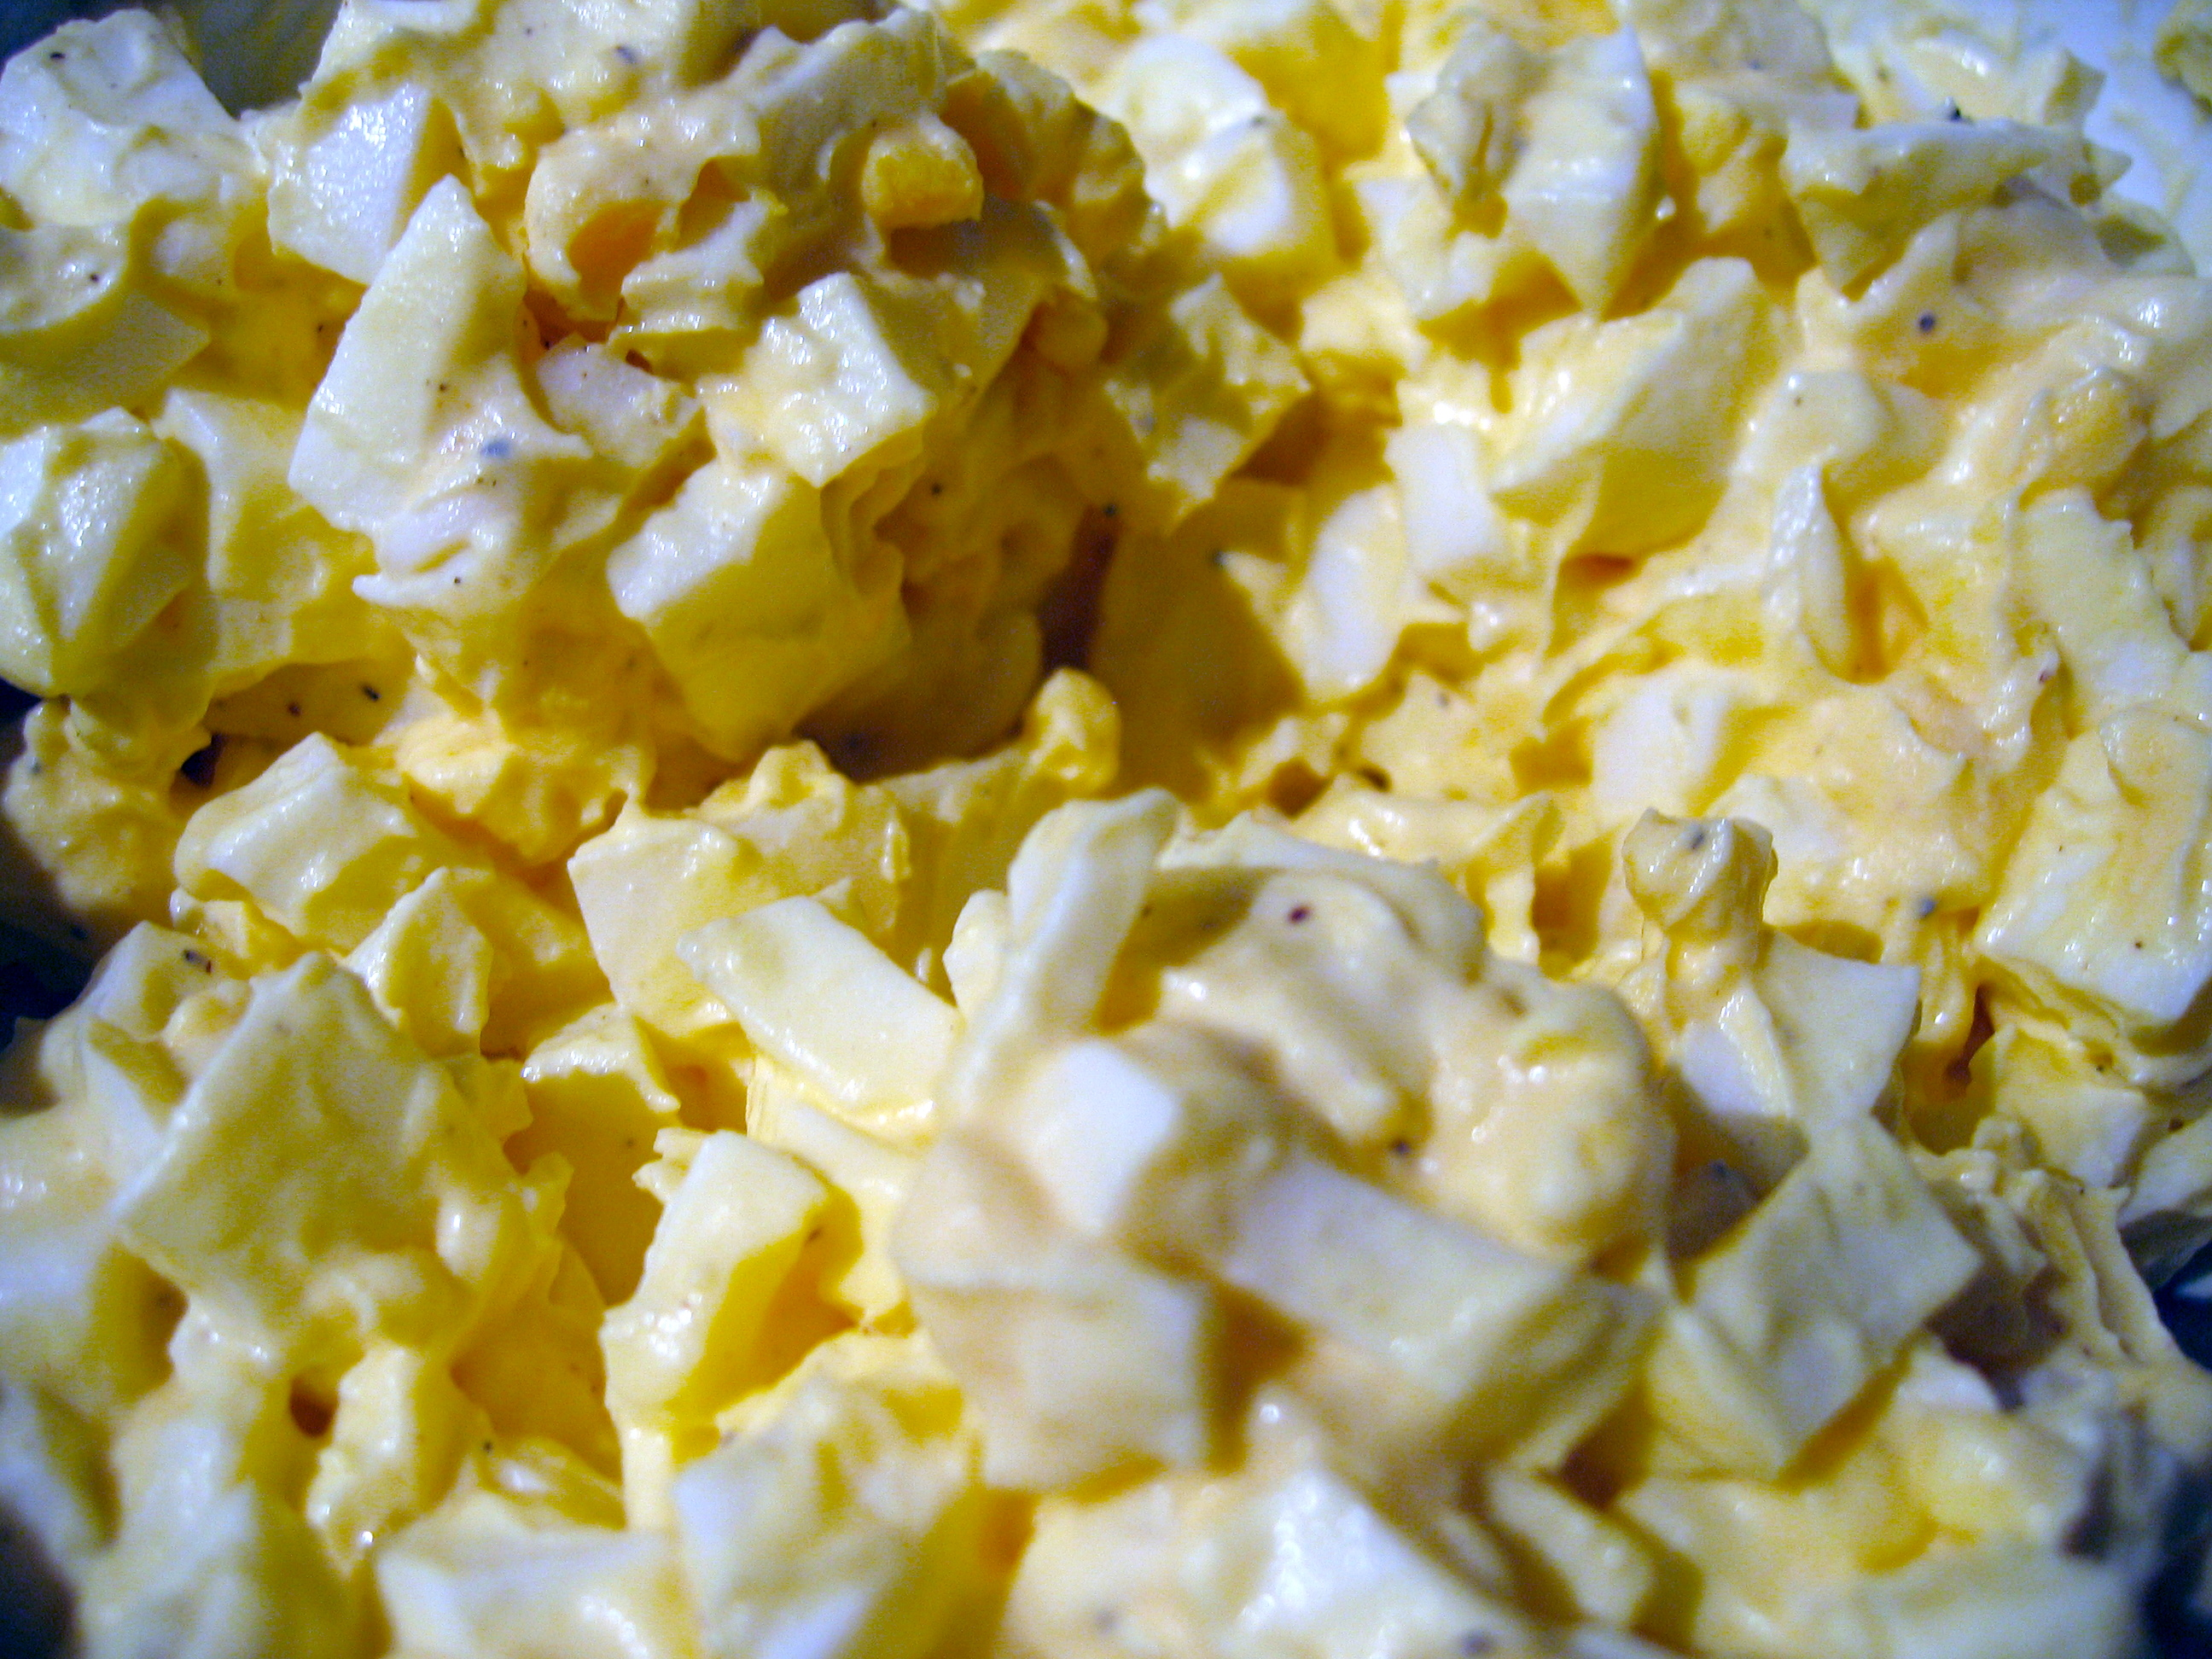 File:Egg Salad.jpg - Wikimedia Commons